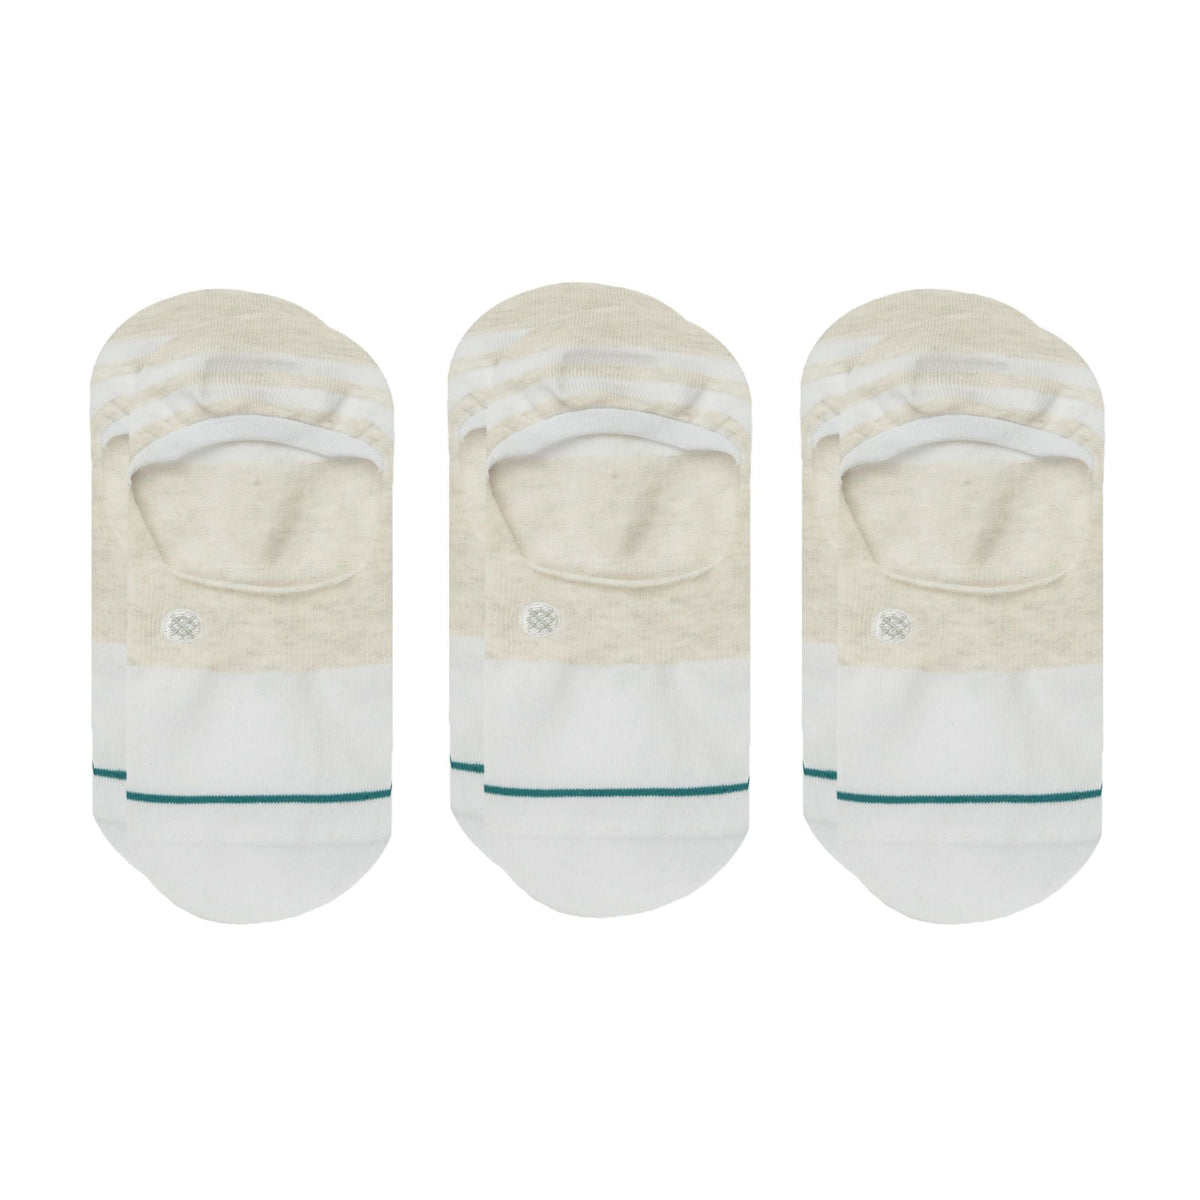 GAMUT 3 PACK - WHITE